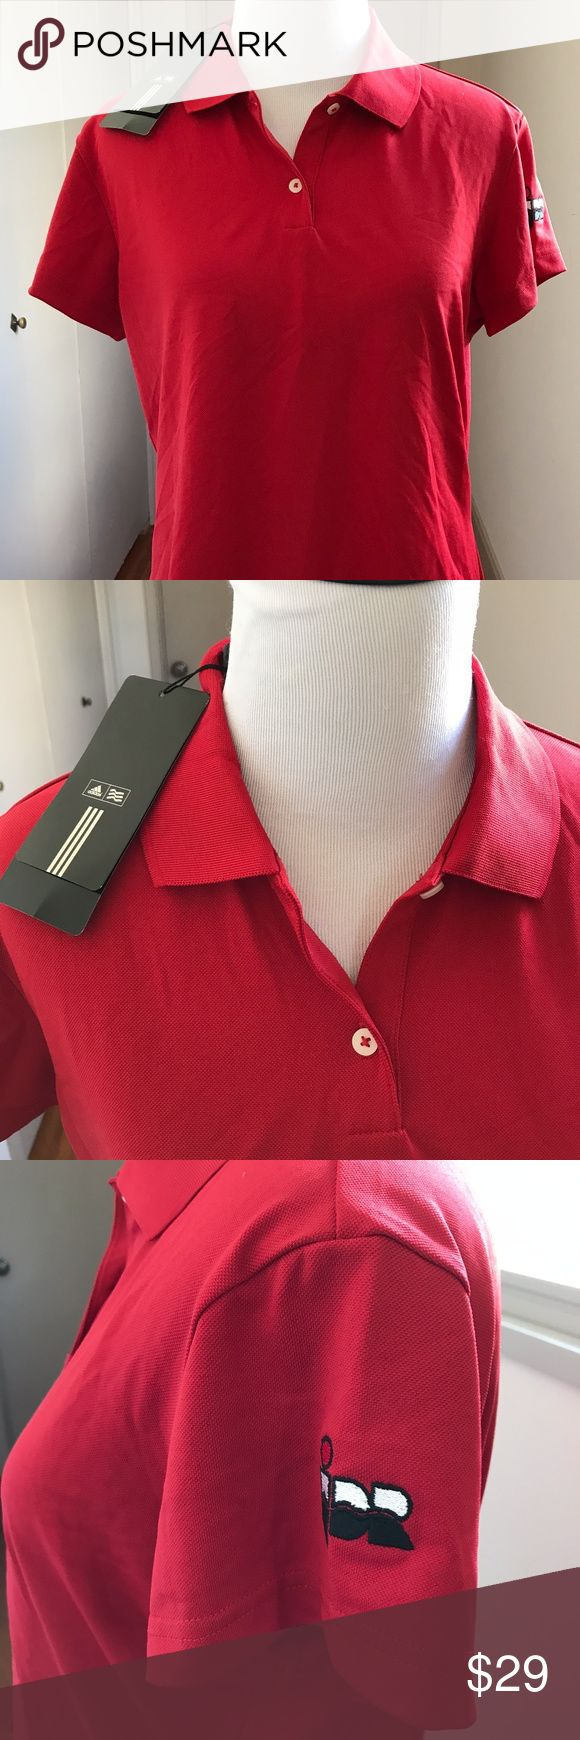 """Adidas Red ClimaLite Red Polo Shirt Golf New w Tag Adidas Woman's Red ClimaLite Red Polo / Golf Shirt . Short Sleeve  Size: Medium. New with Tag. Measurements: Length (shoulder to bottom edge): 22"""" Width (from under one arm to the other):  19""""  Fabric: Polyester. Smoke Free Home. We do have Cats.  This shirt is NOT loose fit. Please read the measurements 😀.. adidas Tops"""